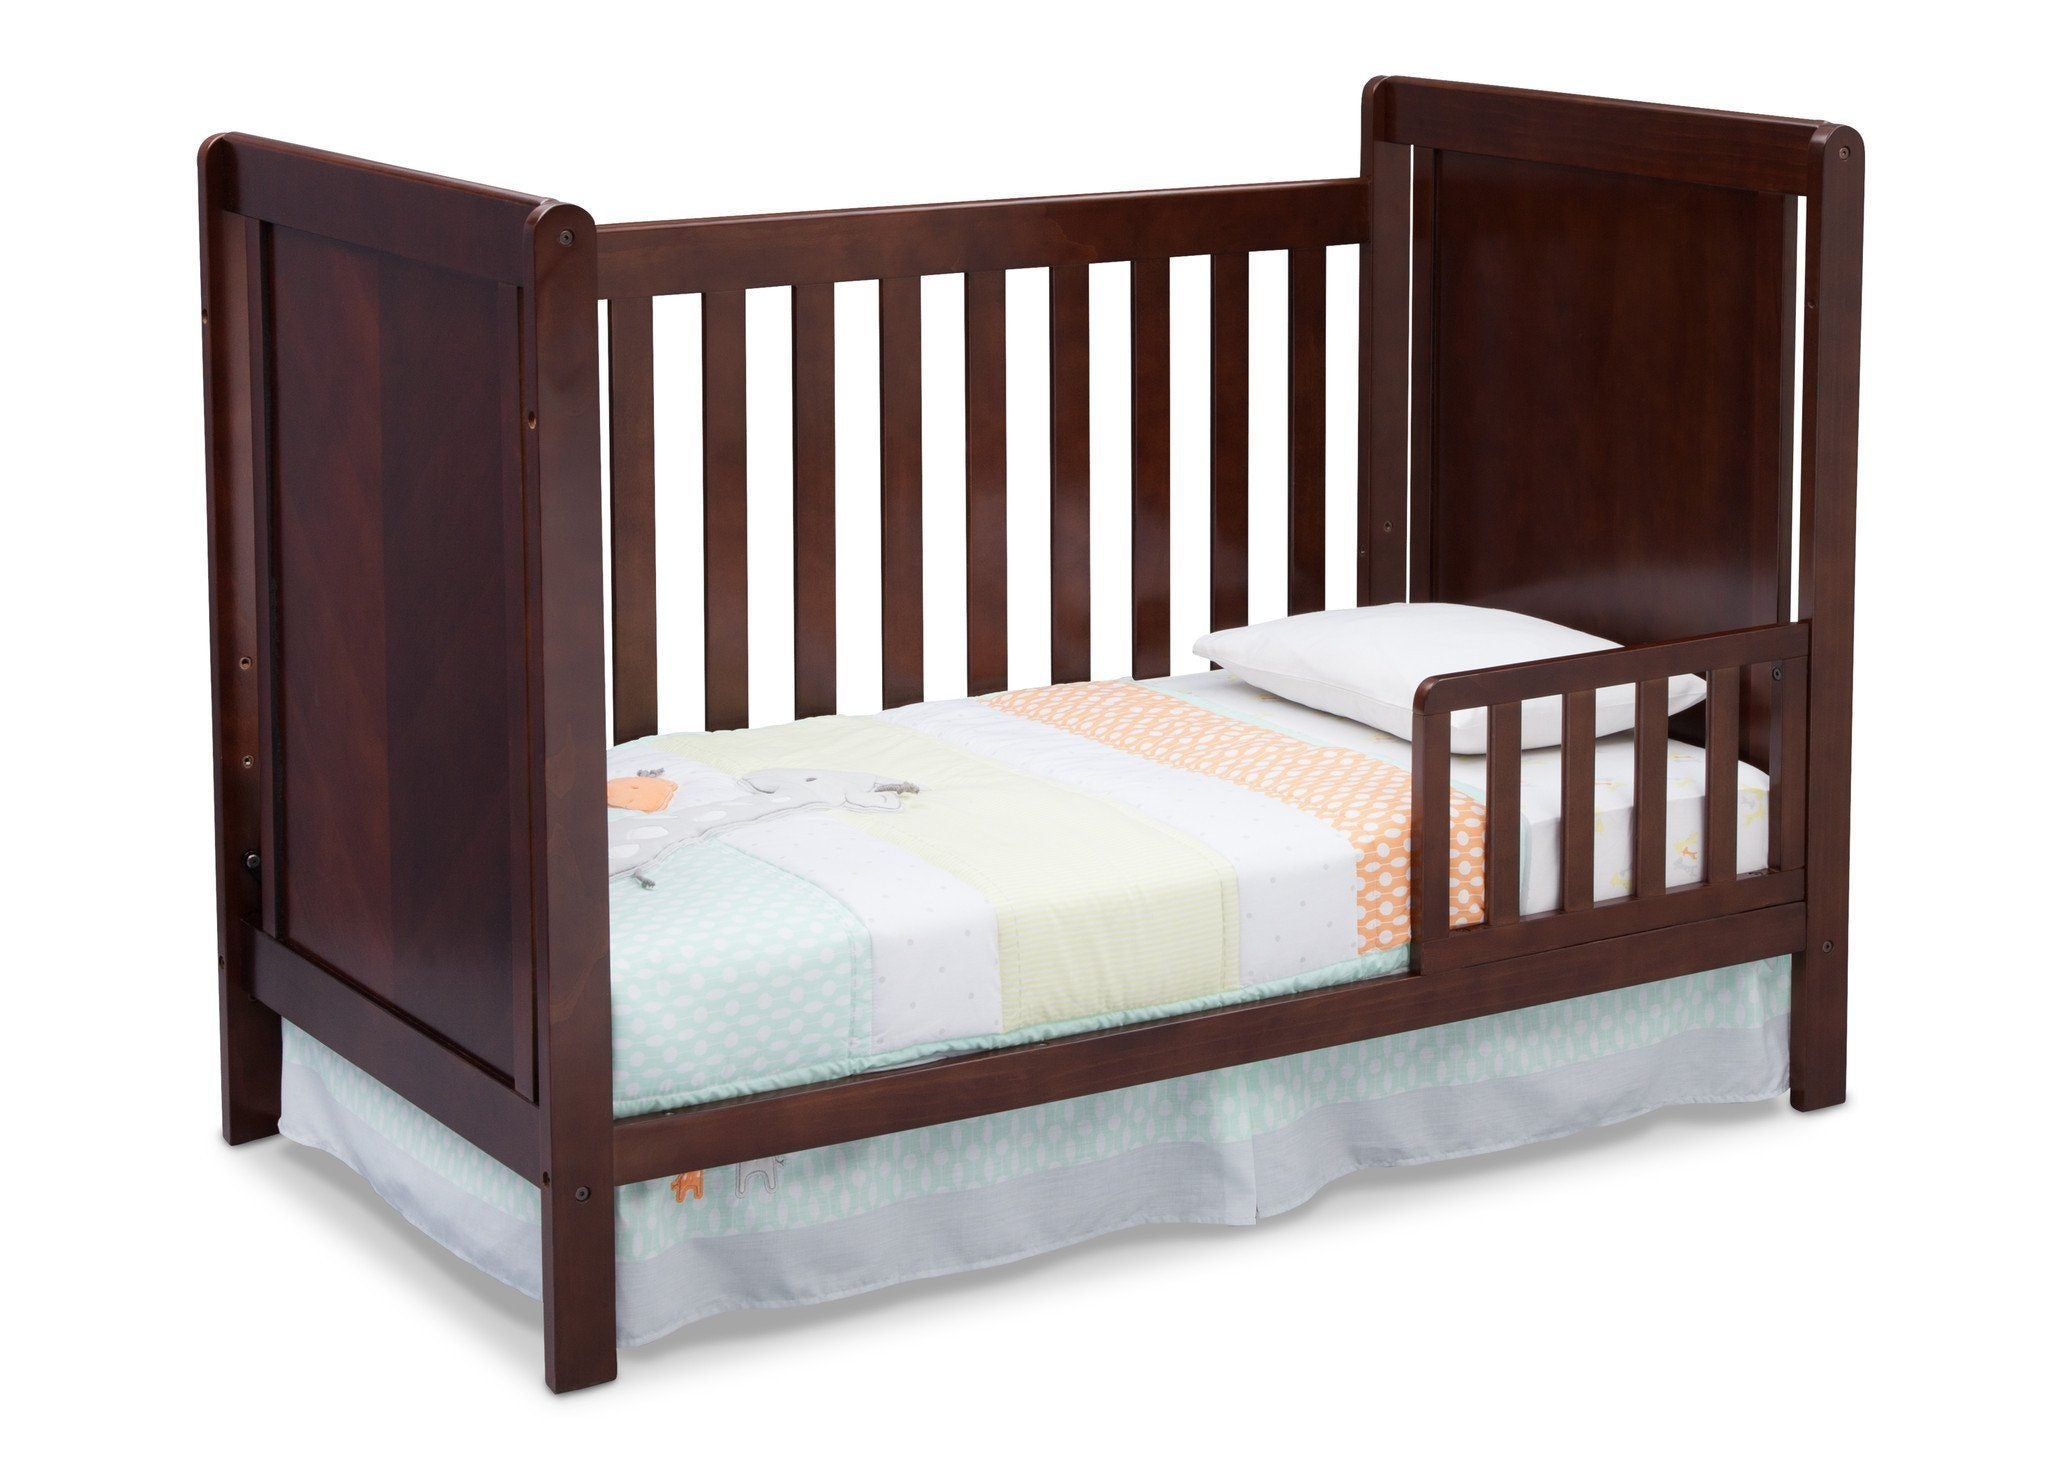 Delta Children Chocolate (204) Cypress 4-in-1 Crib, Toddler Bed Conversion with Toddler Guard Rail b5b